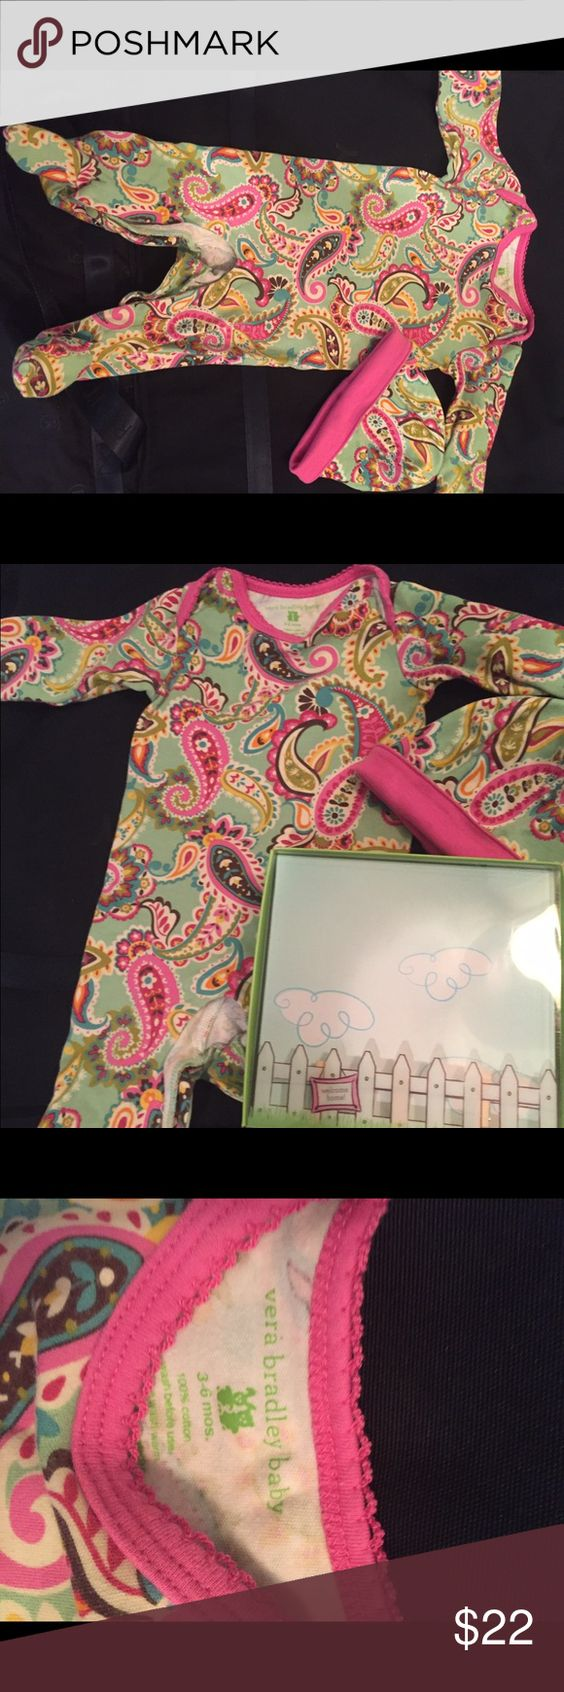 Vera Bradley layette Vera Bradley infant layette in Tutti Frutti, 3-6 months with matching cap. Worn and washed only once. Excellent condition! Vera Bradley One Pieces Footies